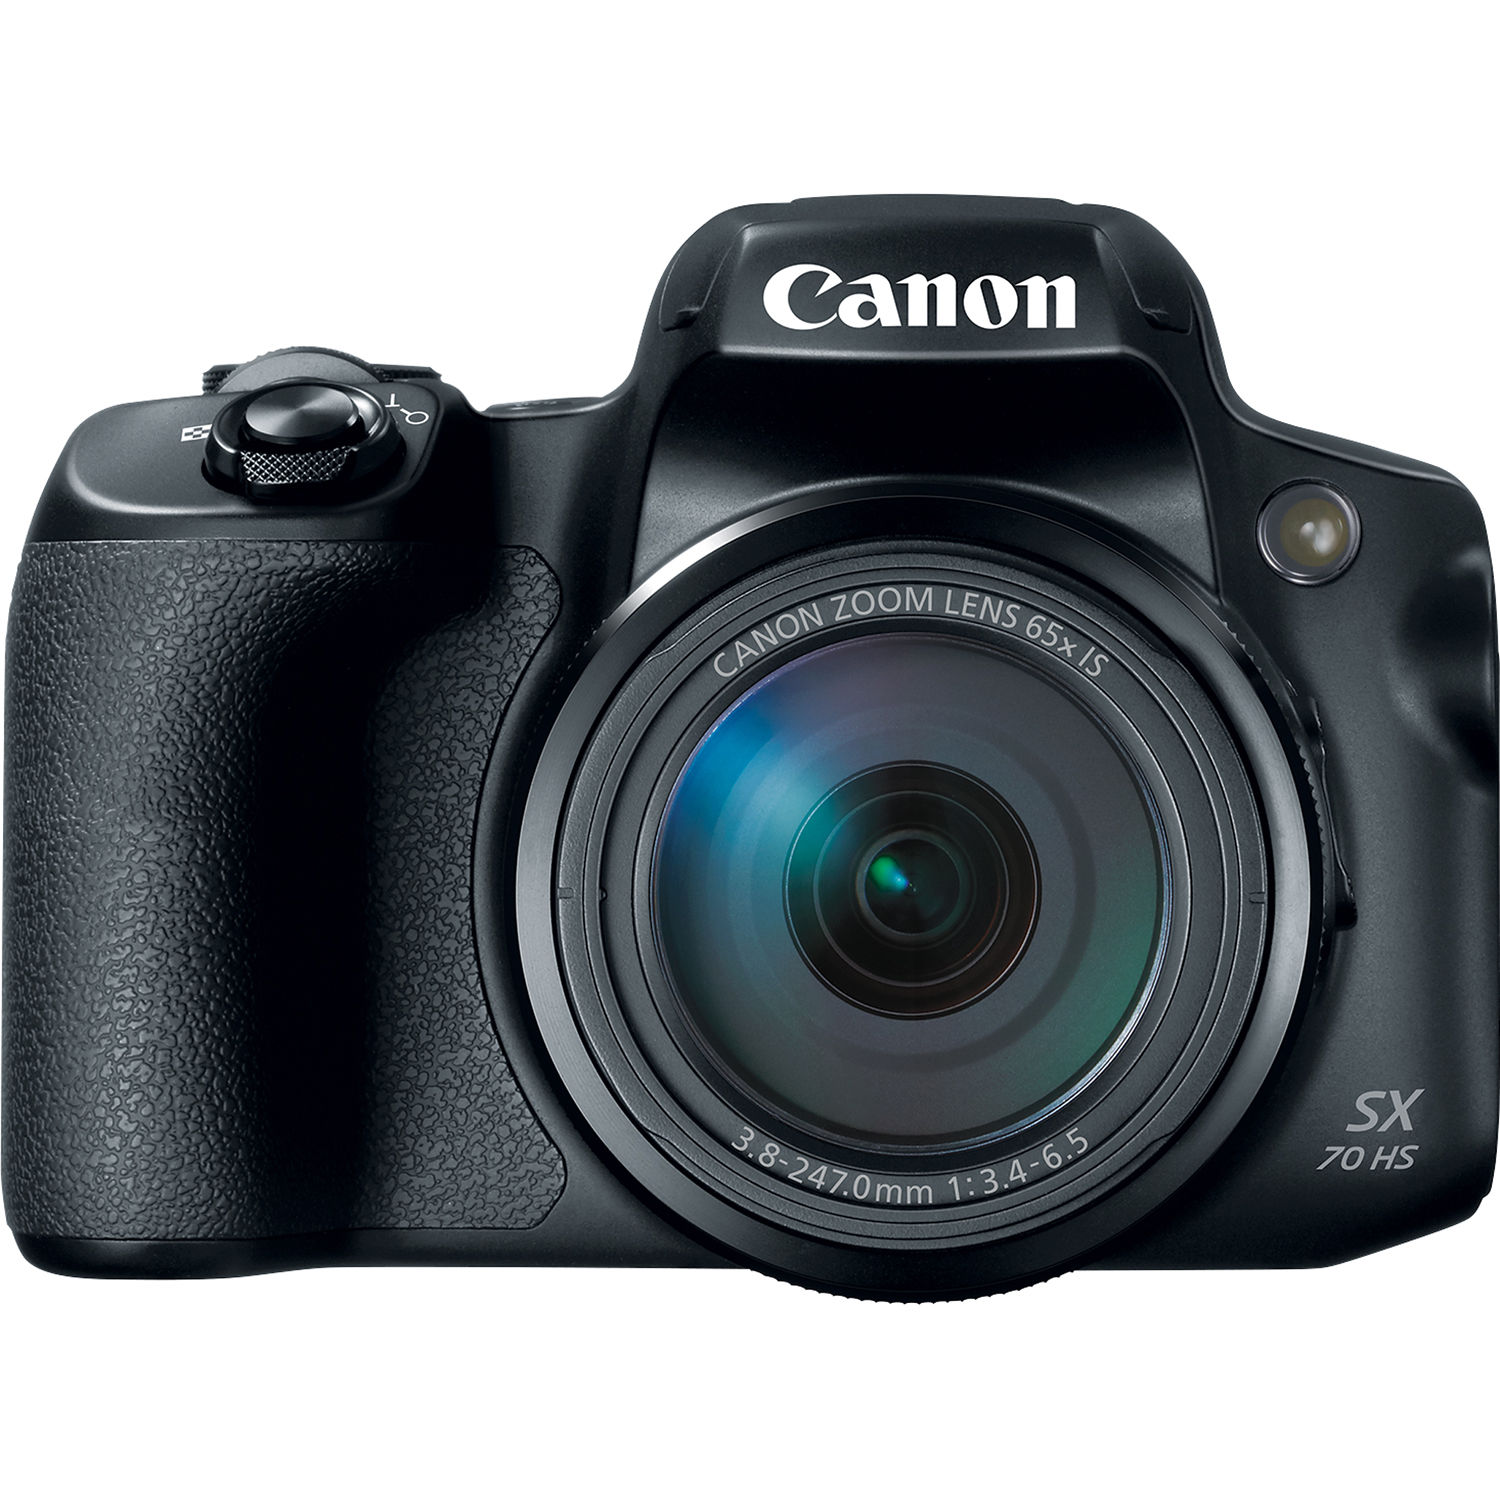 Canon PowerShot SX70 HS Digital Camera 3071C001 B&H Photo Video